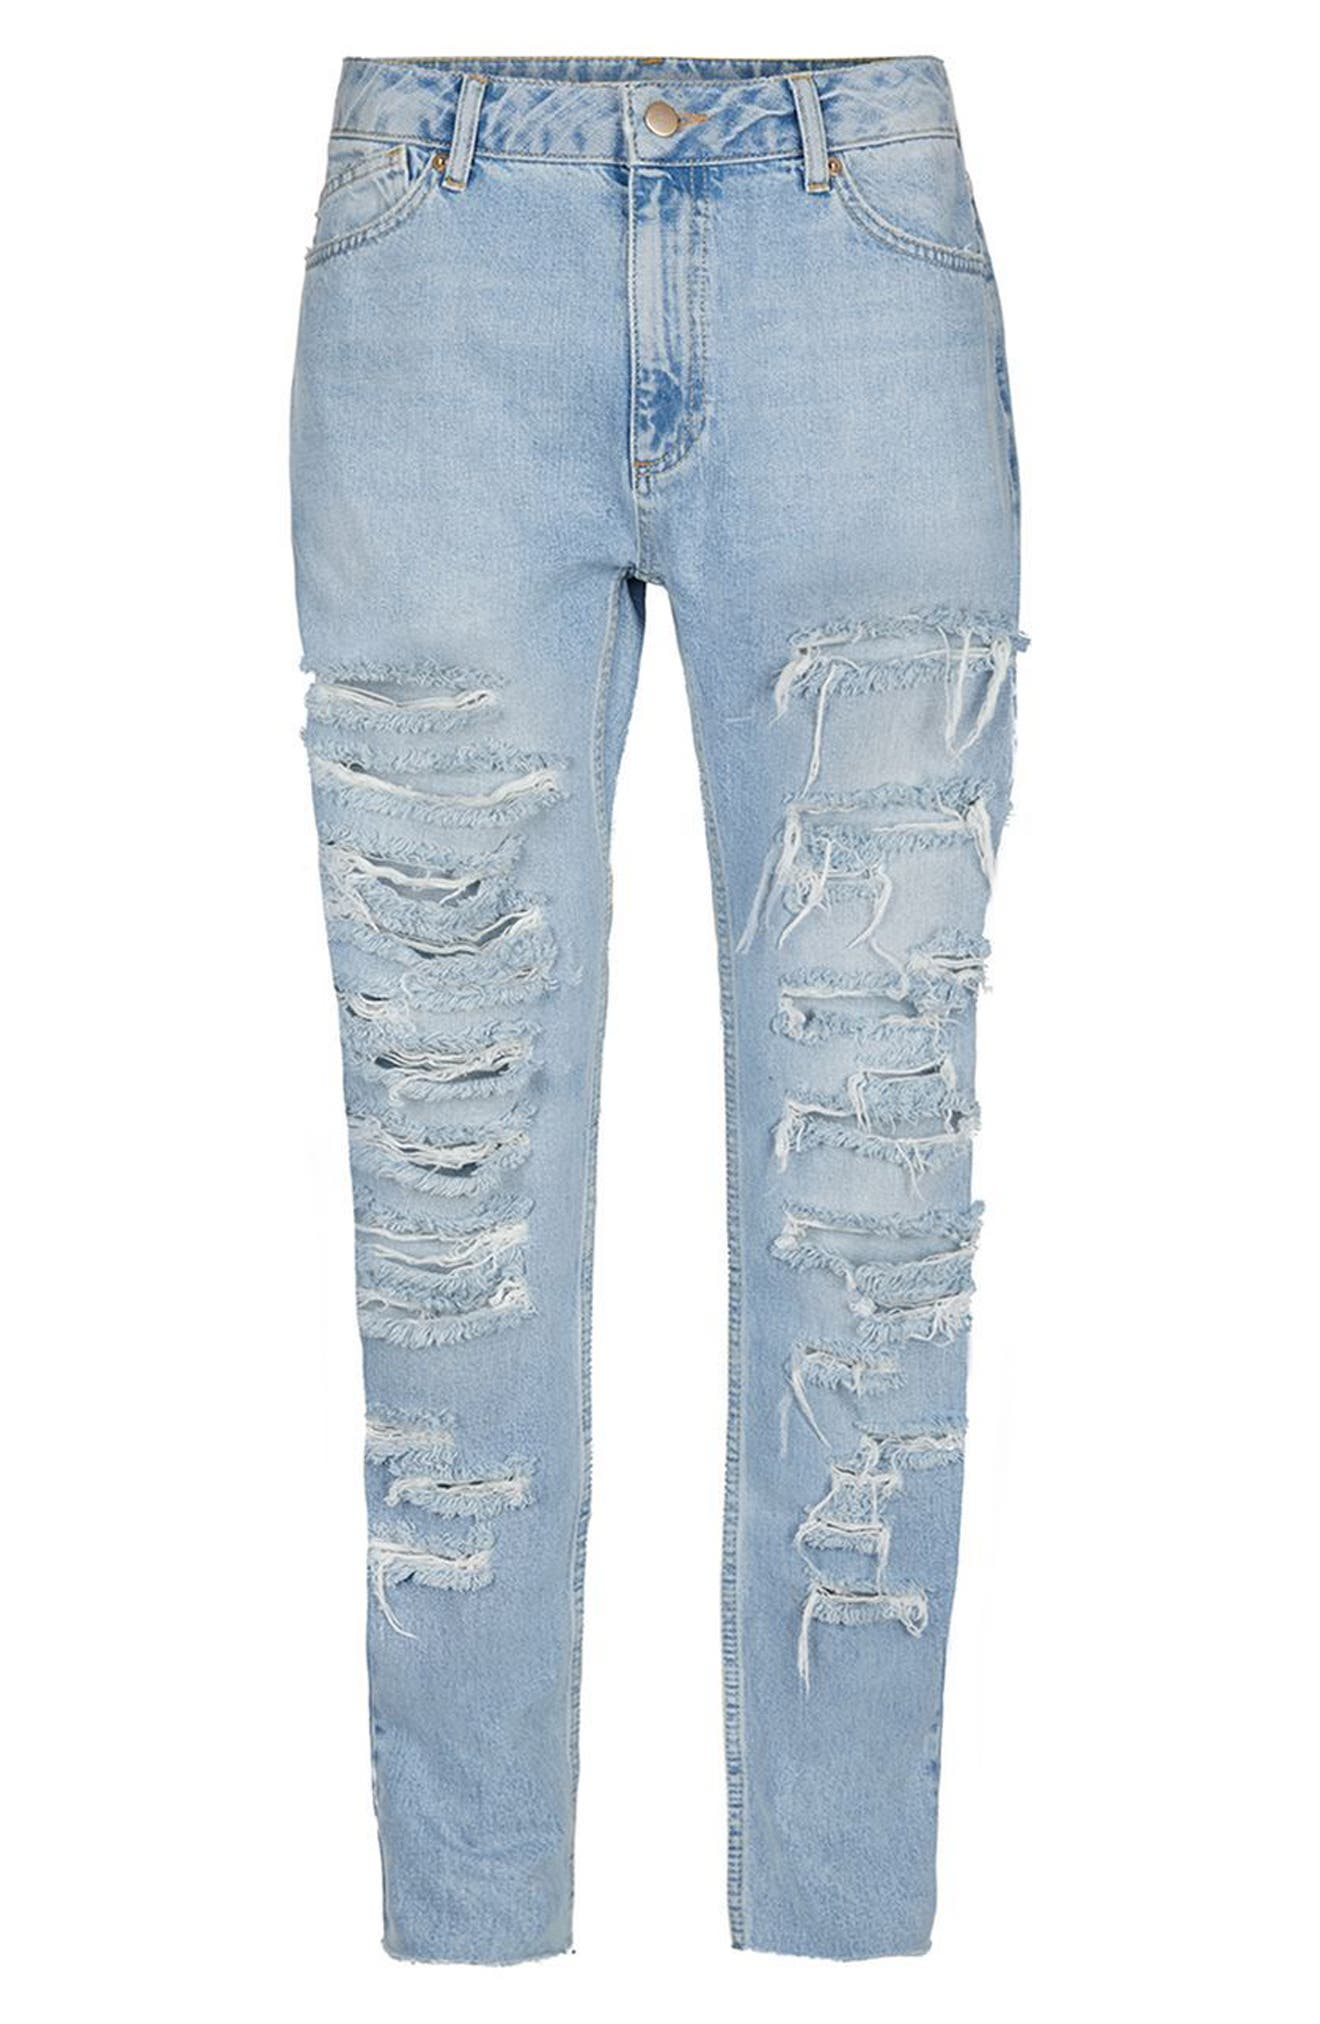 AAA Collection Shredded Skinny Jeans,                             Alternate thumbnail 4, color,                             400